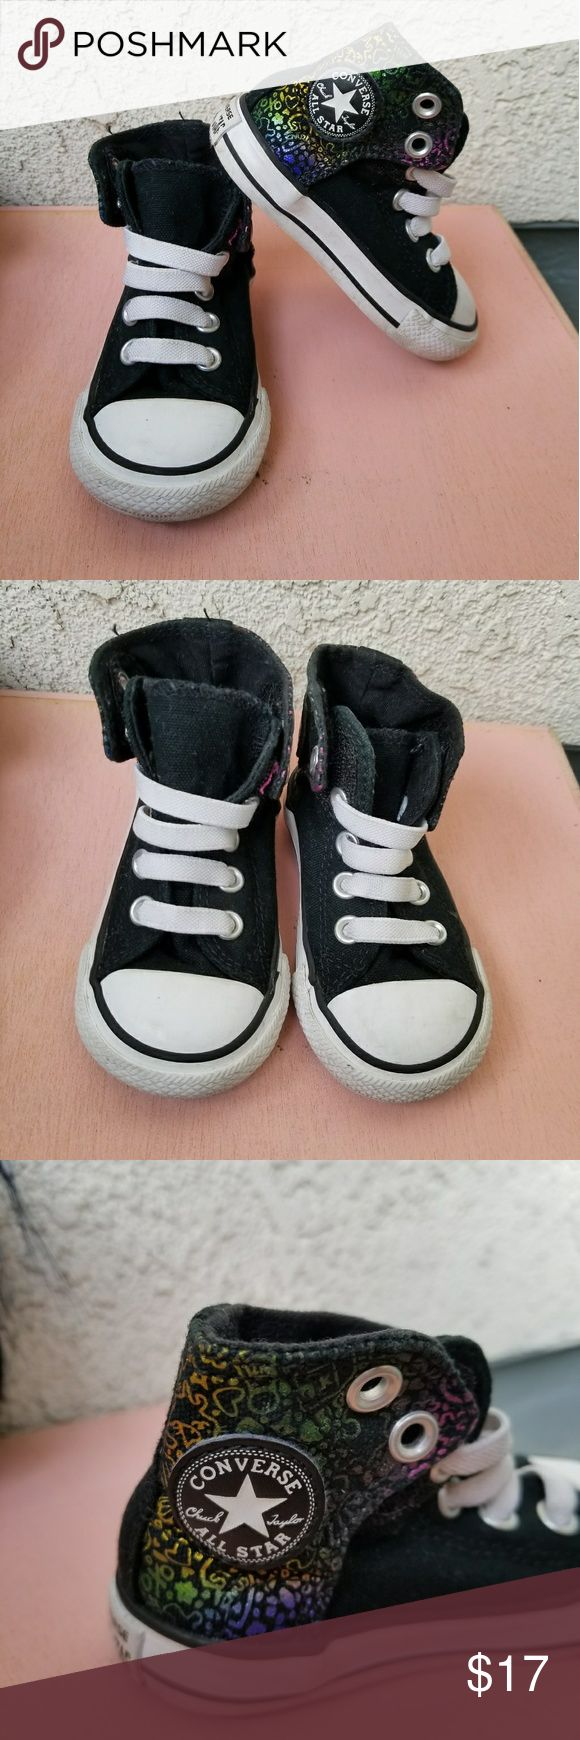 Girls Converse High Top Shoes Toddler Girls Black and white converse shoes with cool designs on the sides as pictured above. Good condition. Size 5. Converse Shoes Sneakers